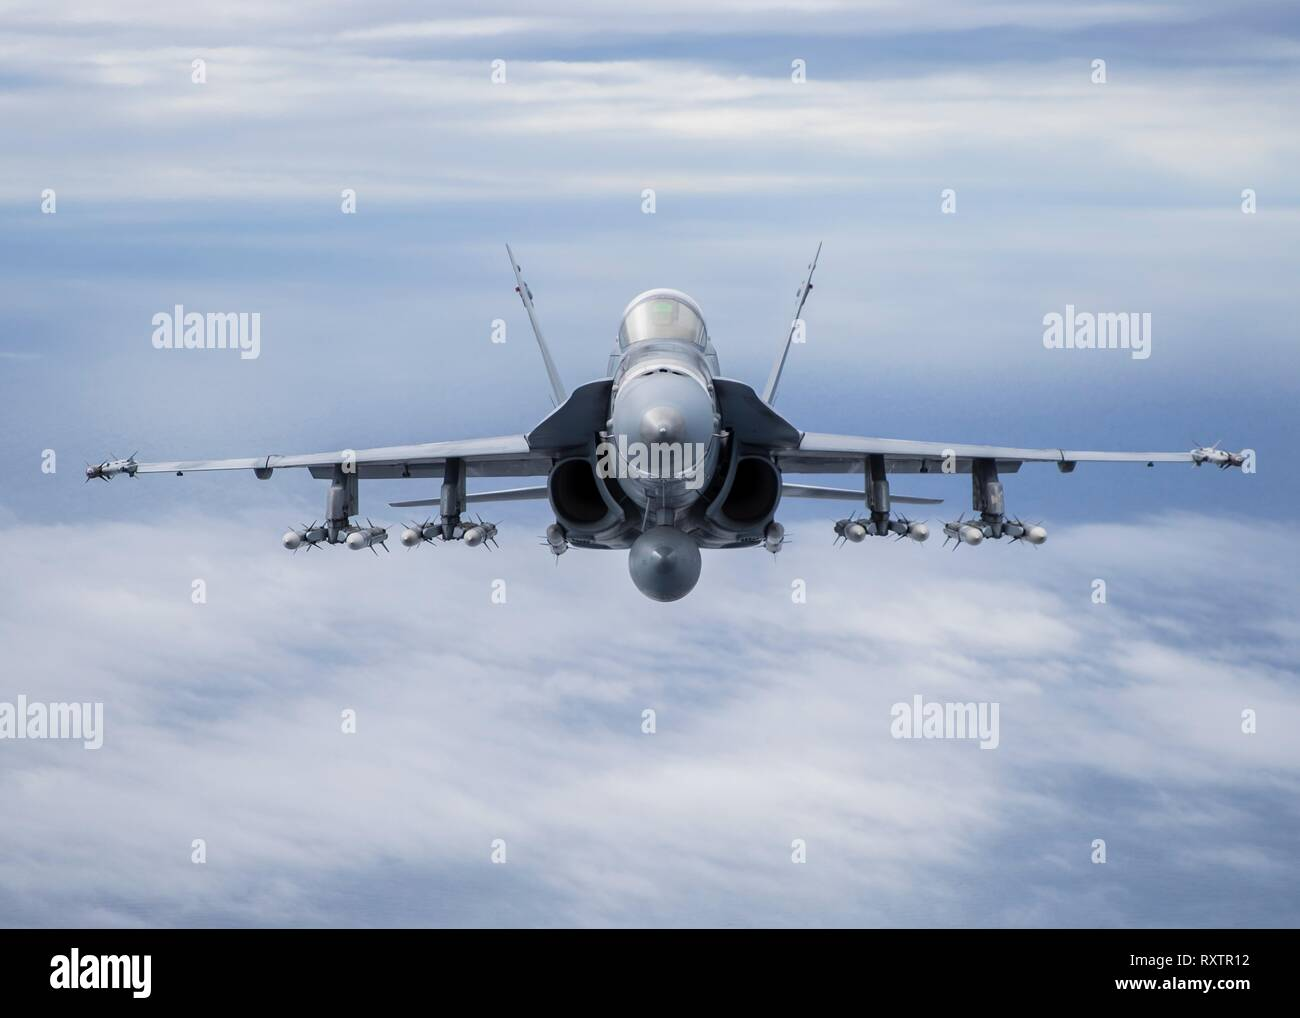 A U.S. Marine Corps F/A-18 Hornet fight aircraft with Marine Fighter Attack Squadron 323, carrying ten AIM-120 and two AIM-9X Air-to-Air missiles, during a training mission over the W-291 training area March 6, 2019 in Southern California. - Stock Image